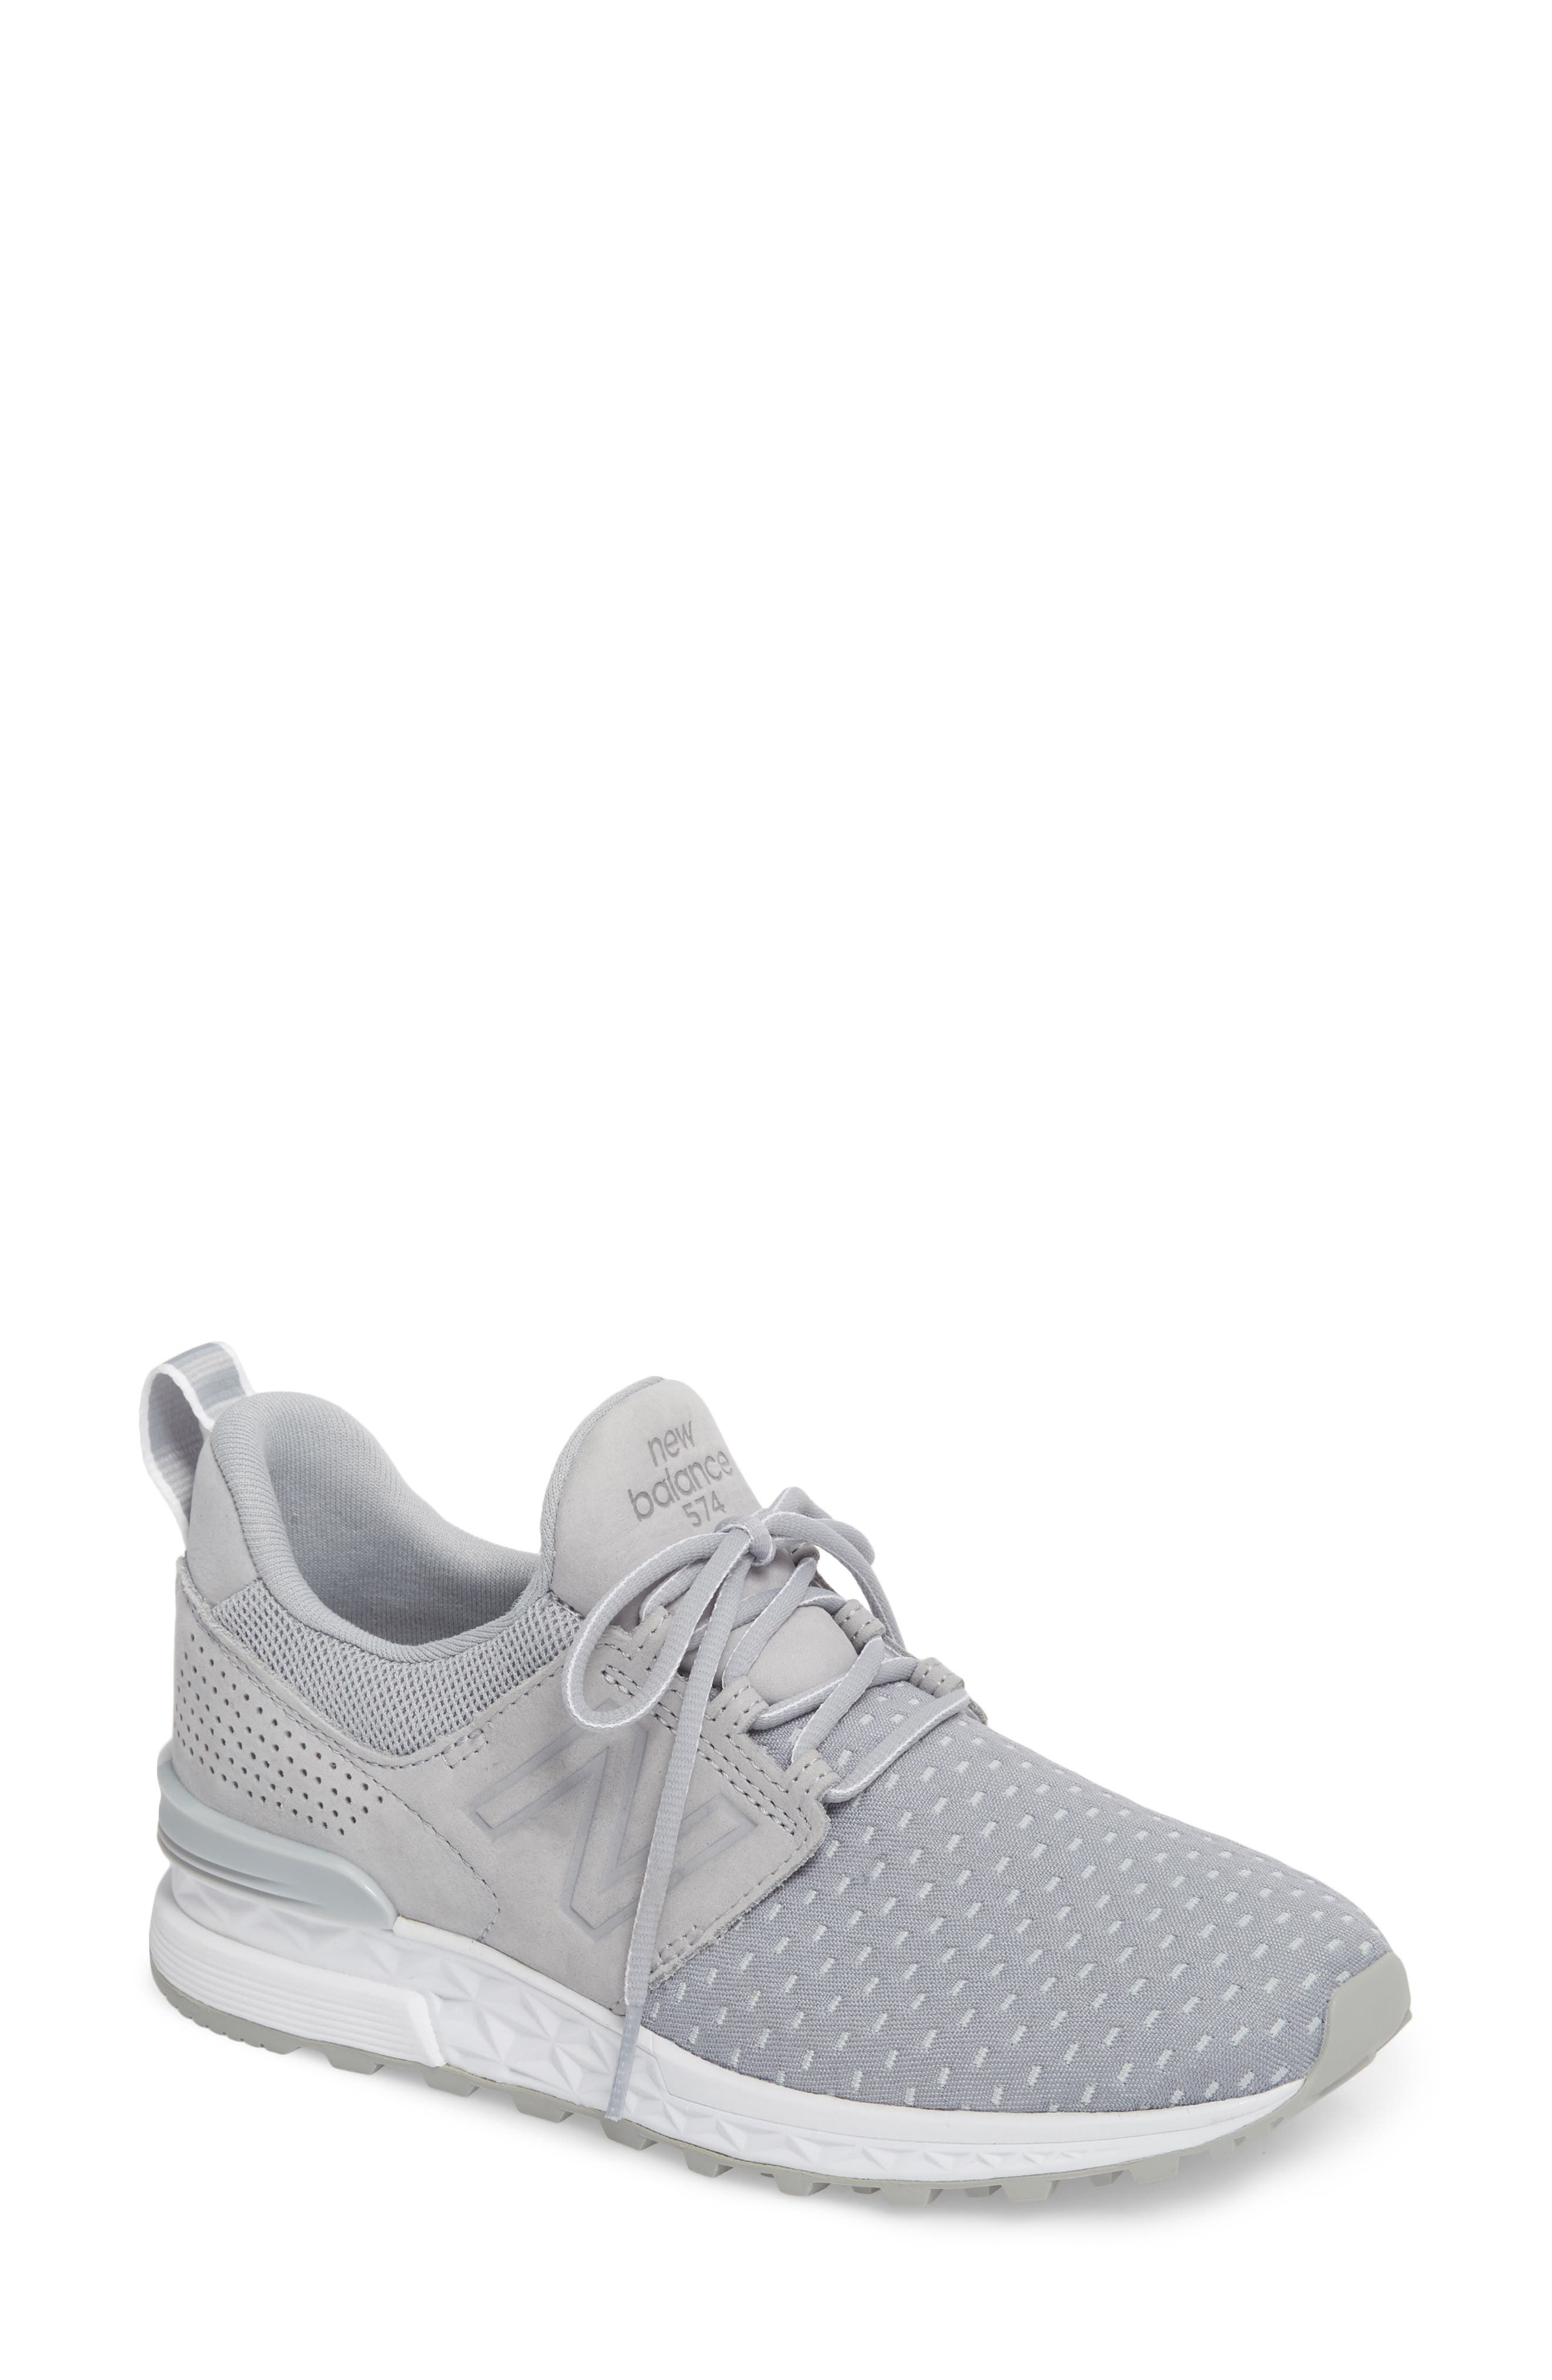 574 Sport Decon Fresh Foam Sneaker,                             Main thumbnail 1, color,                             Silver Mink